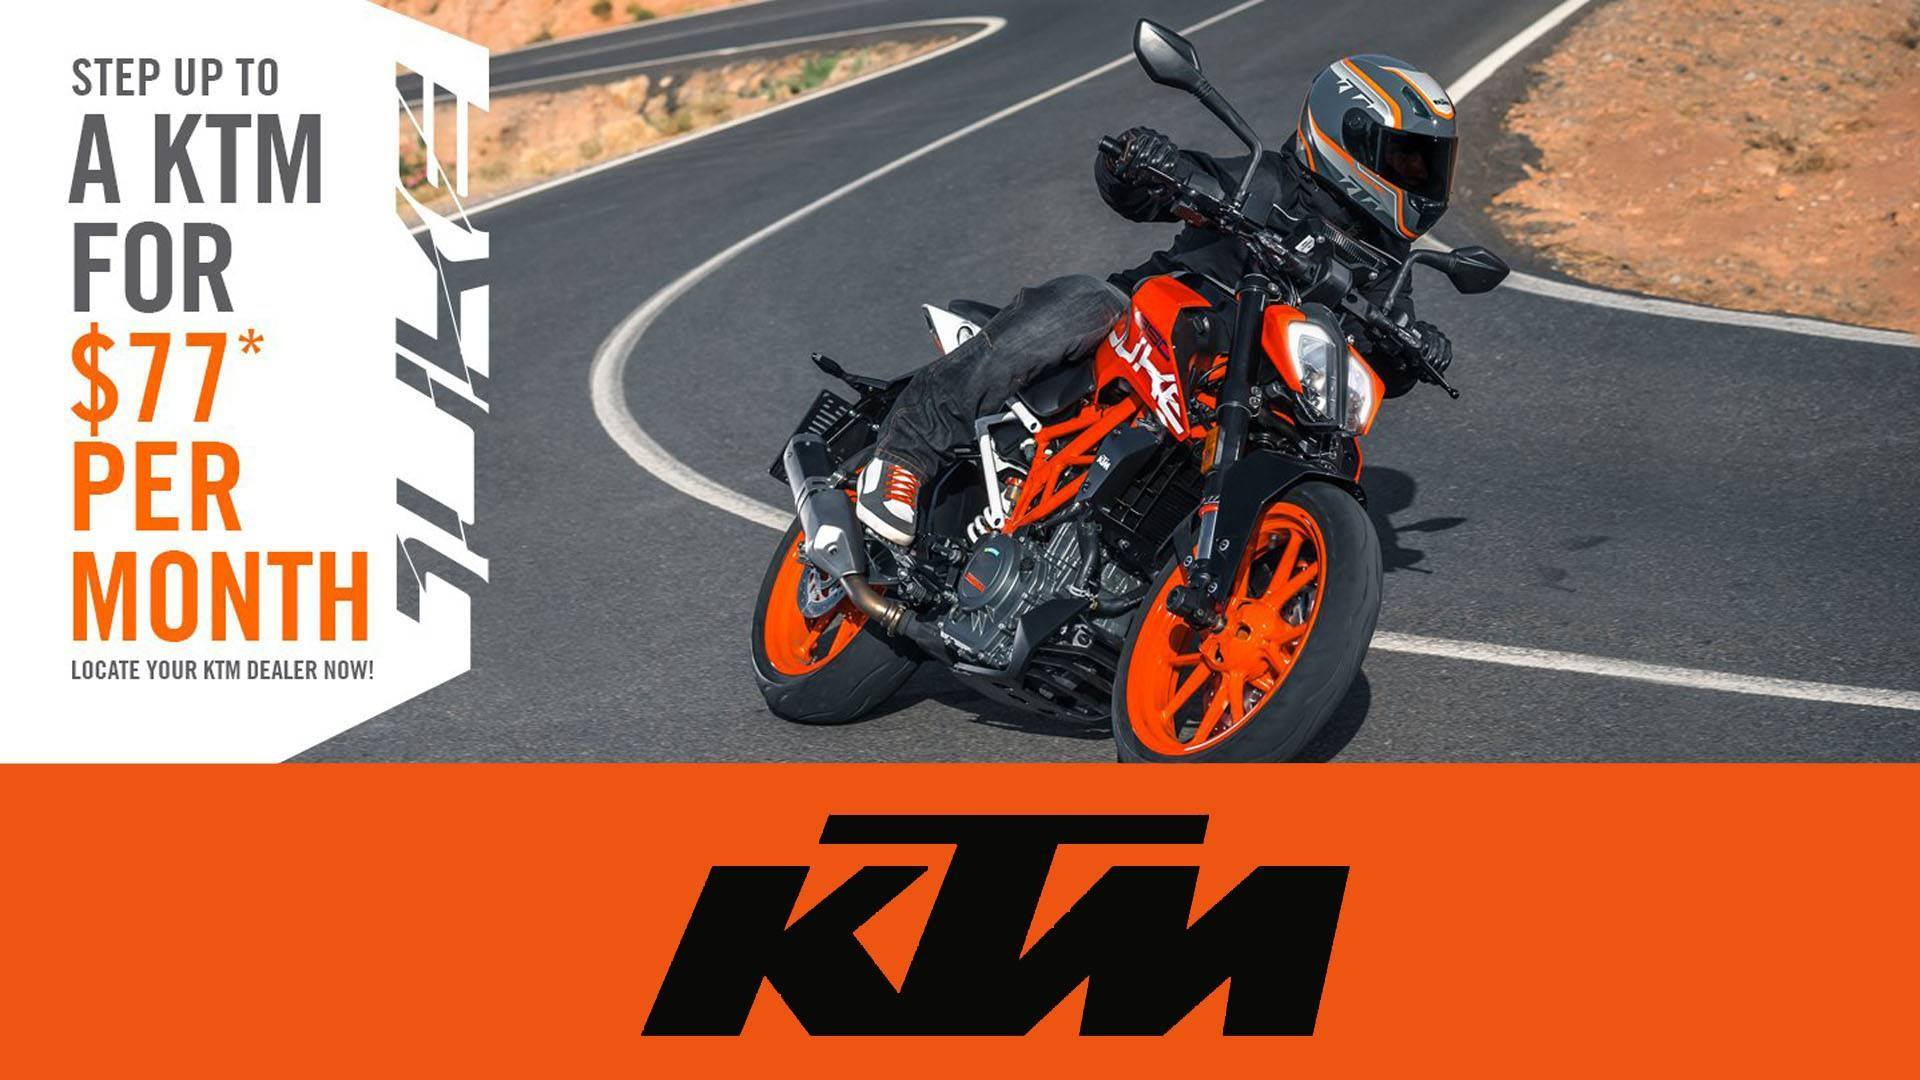 KTM - Step Up To A KTM